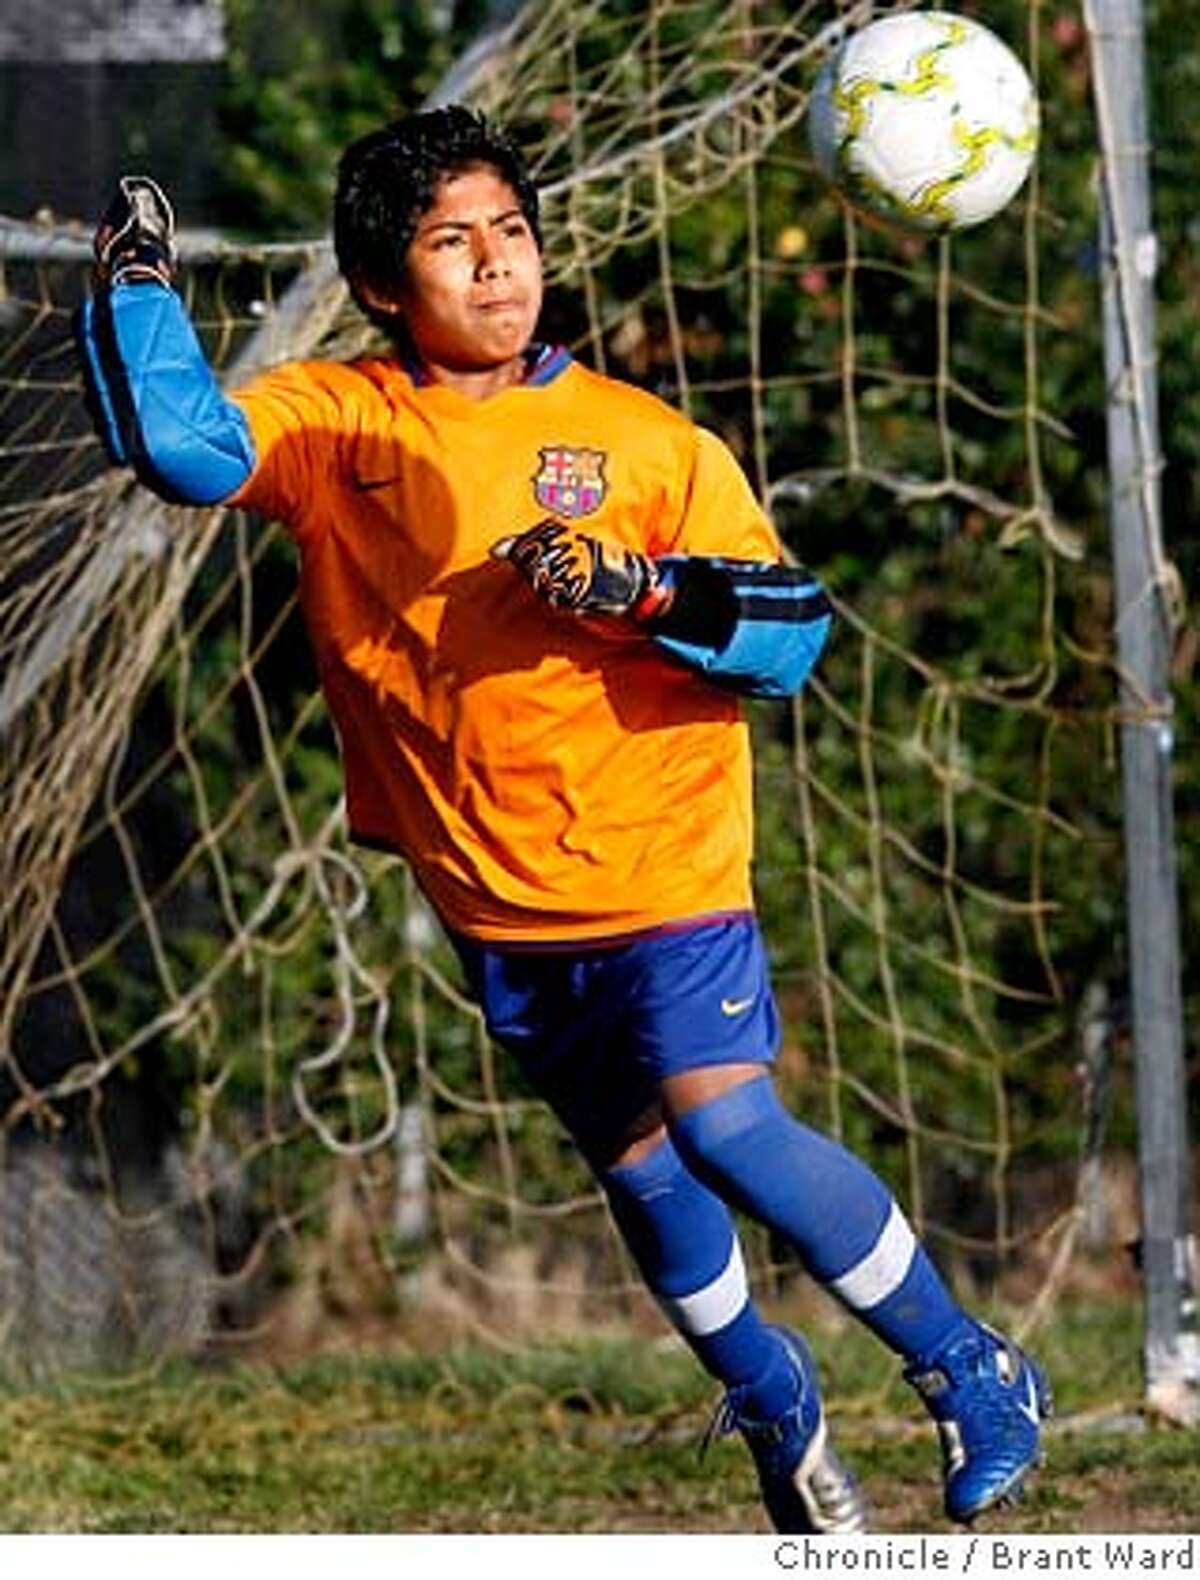 13 year old Francisco Mendoza plays goalie for his youth soccer team. He gets to go to the match Wednesday where he will root for his beloved Mexican Nationals. The Mexican National team has come to town for a match against Ecuador. Many will have to watch the game on television but a few lucky fans will get to attend the game Wednesday night. Youth soccer teams were practicing at Lazear Field Tuesday night...everyone was looking forward to the game. {Brant Ward/San Francisco Chronicle}3/27/07